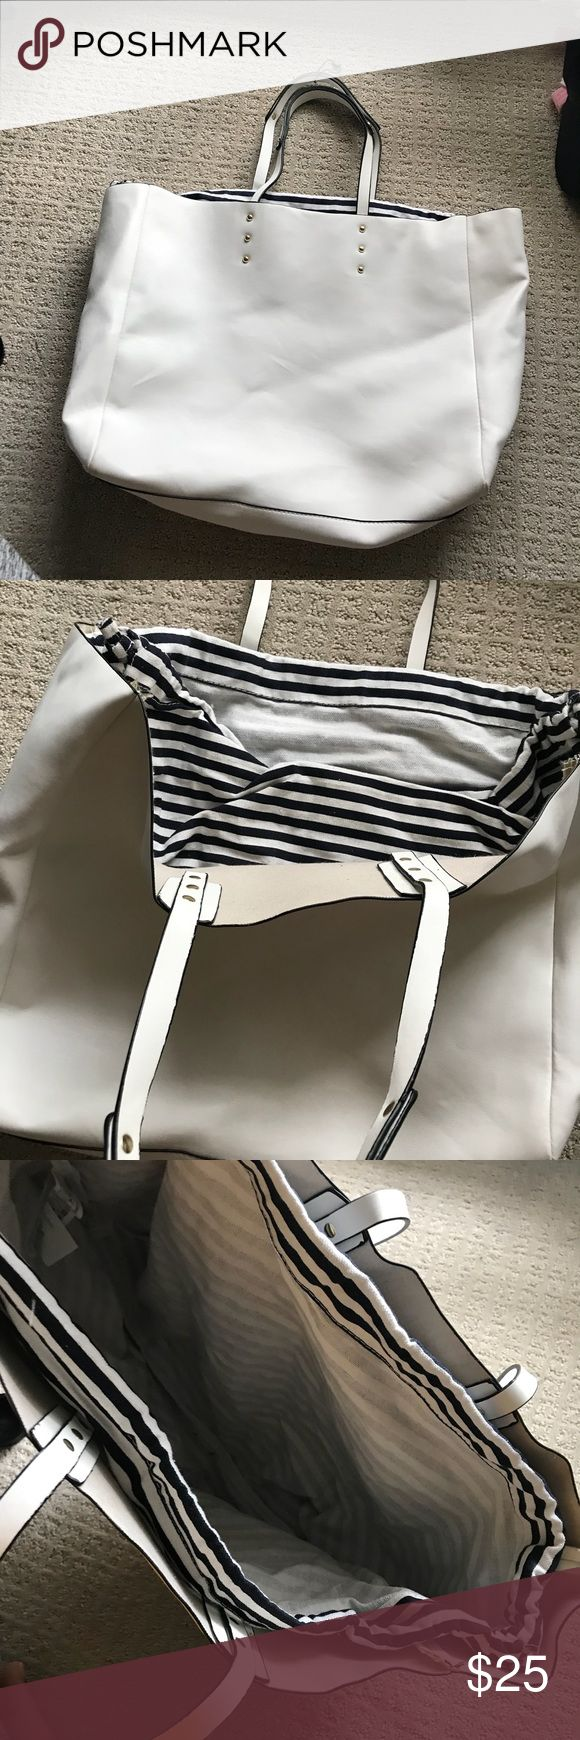 White Zara Tote Bag Brand new without tags never used, has black and white striped lining on the inside. No trades and price is firm Zara Bags Totes